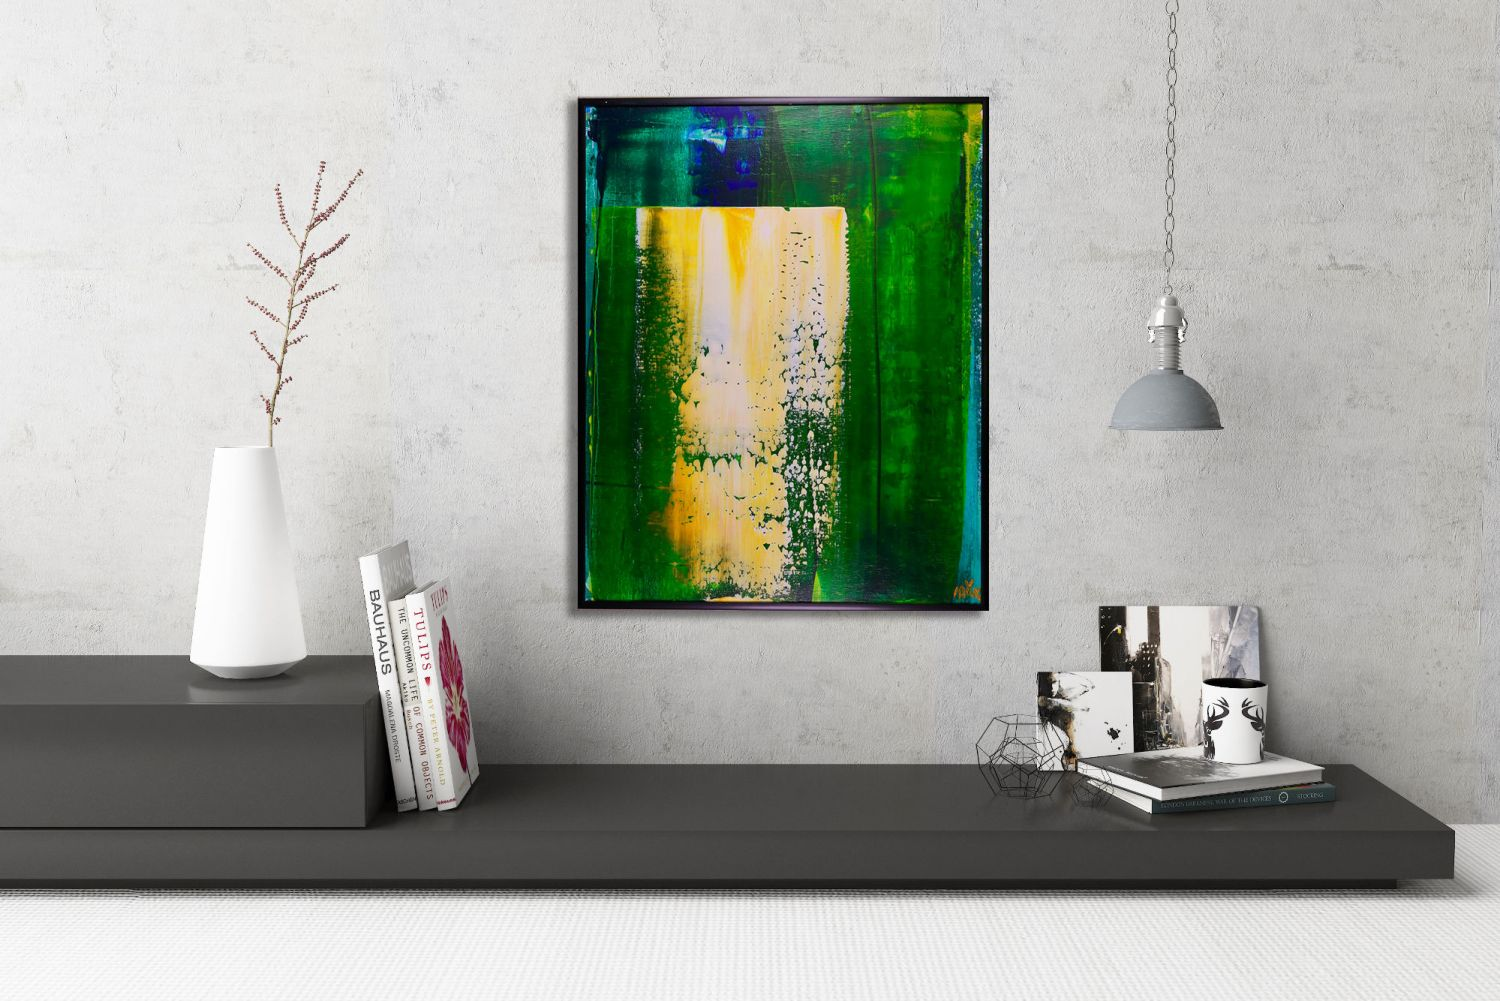 SOLD - Better Times Ahead 1 by Los Angeles - abstract artist - Nestor Toro